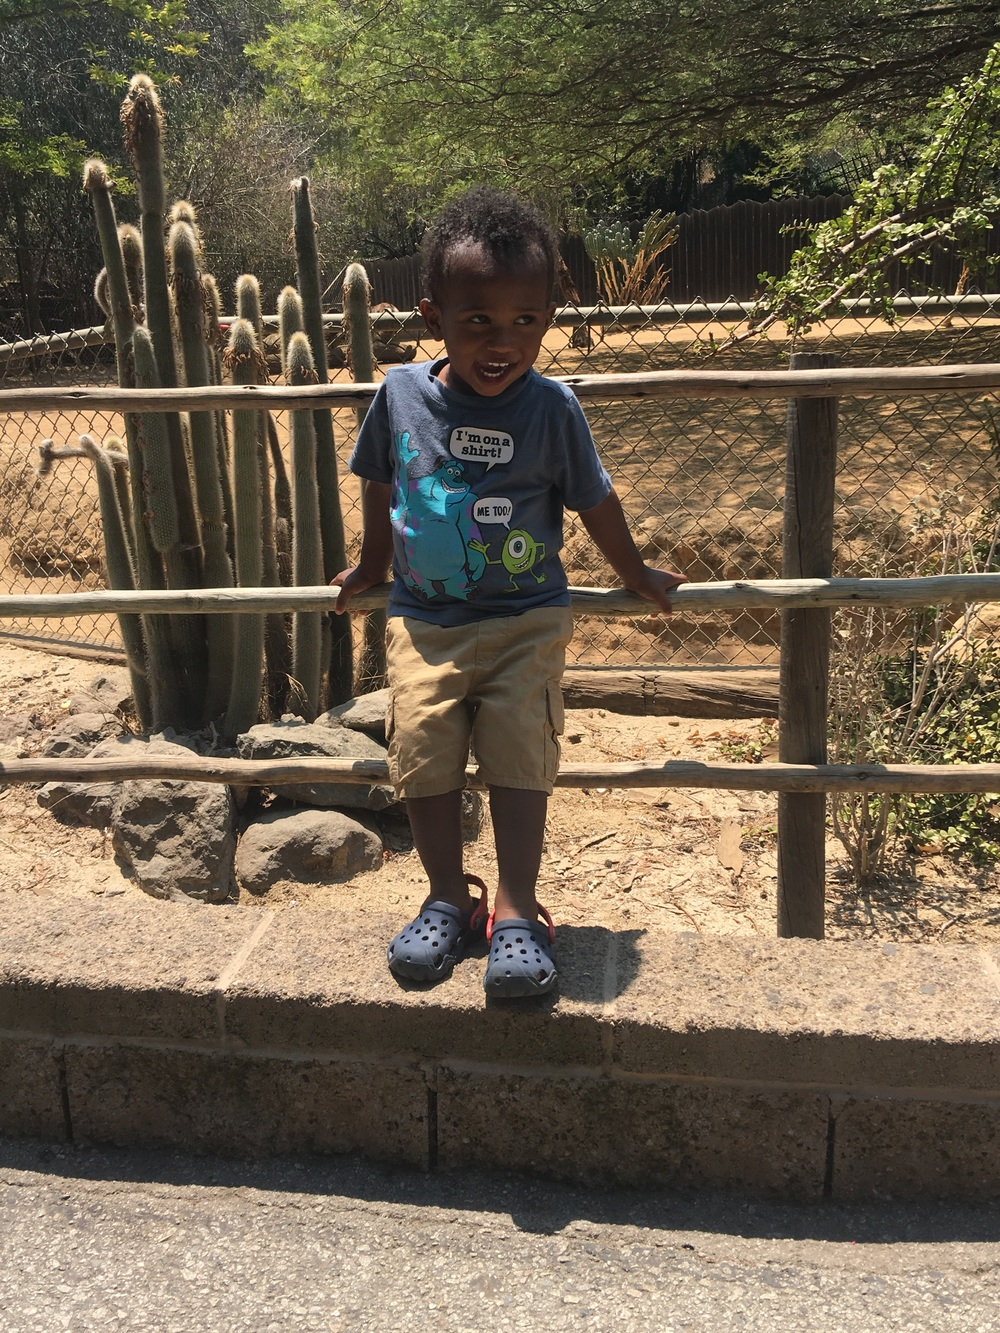 Hanging at the Los Angeles Zoo